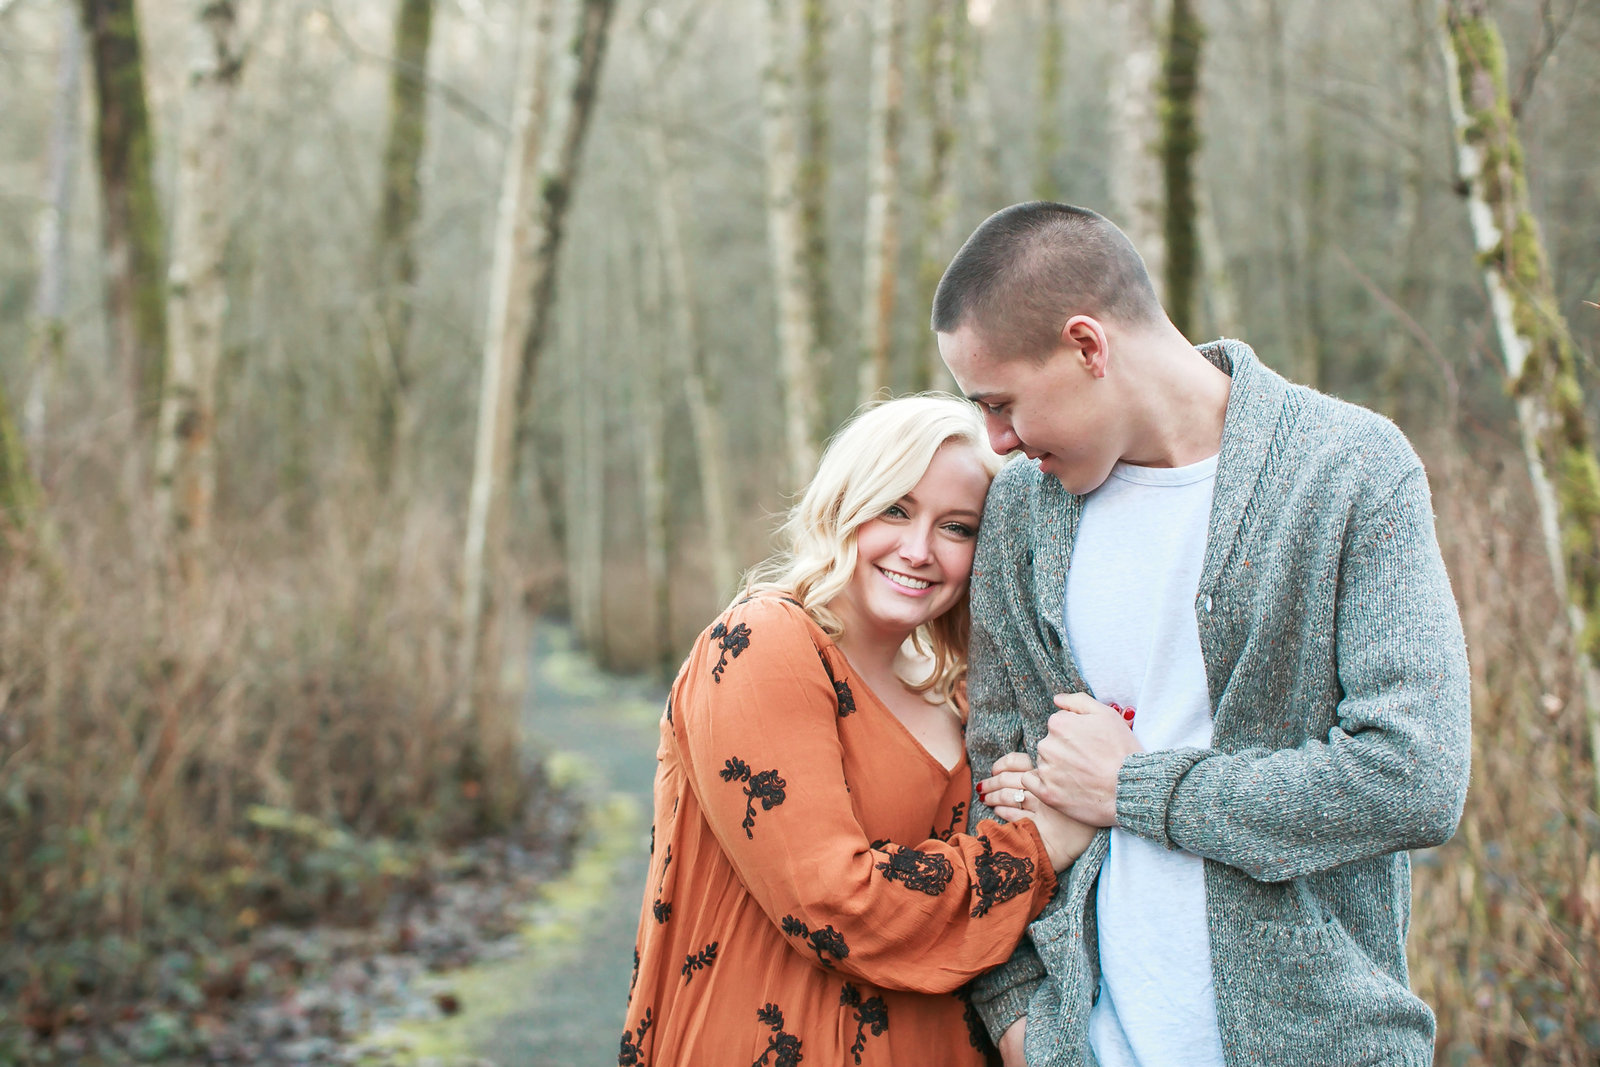 carly-nate-engagement-photos433162